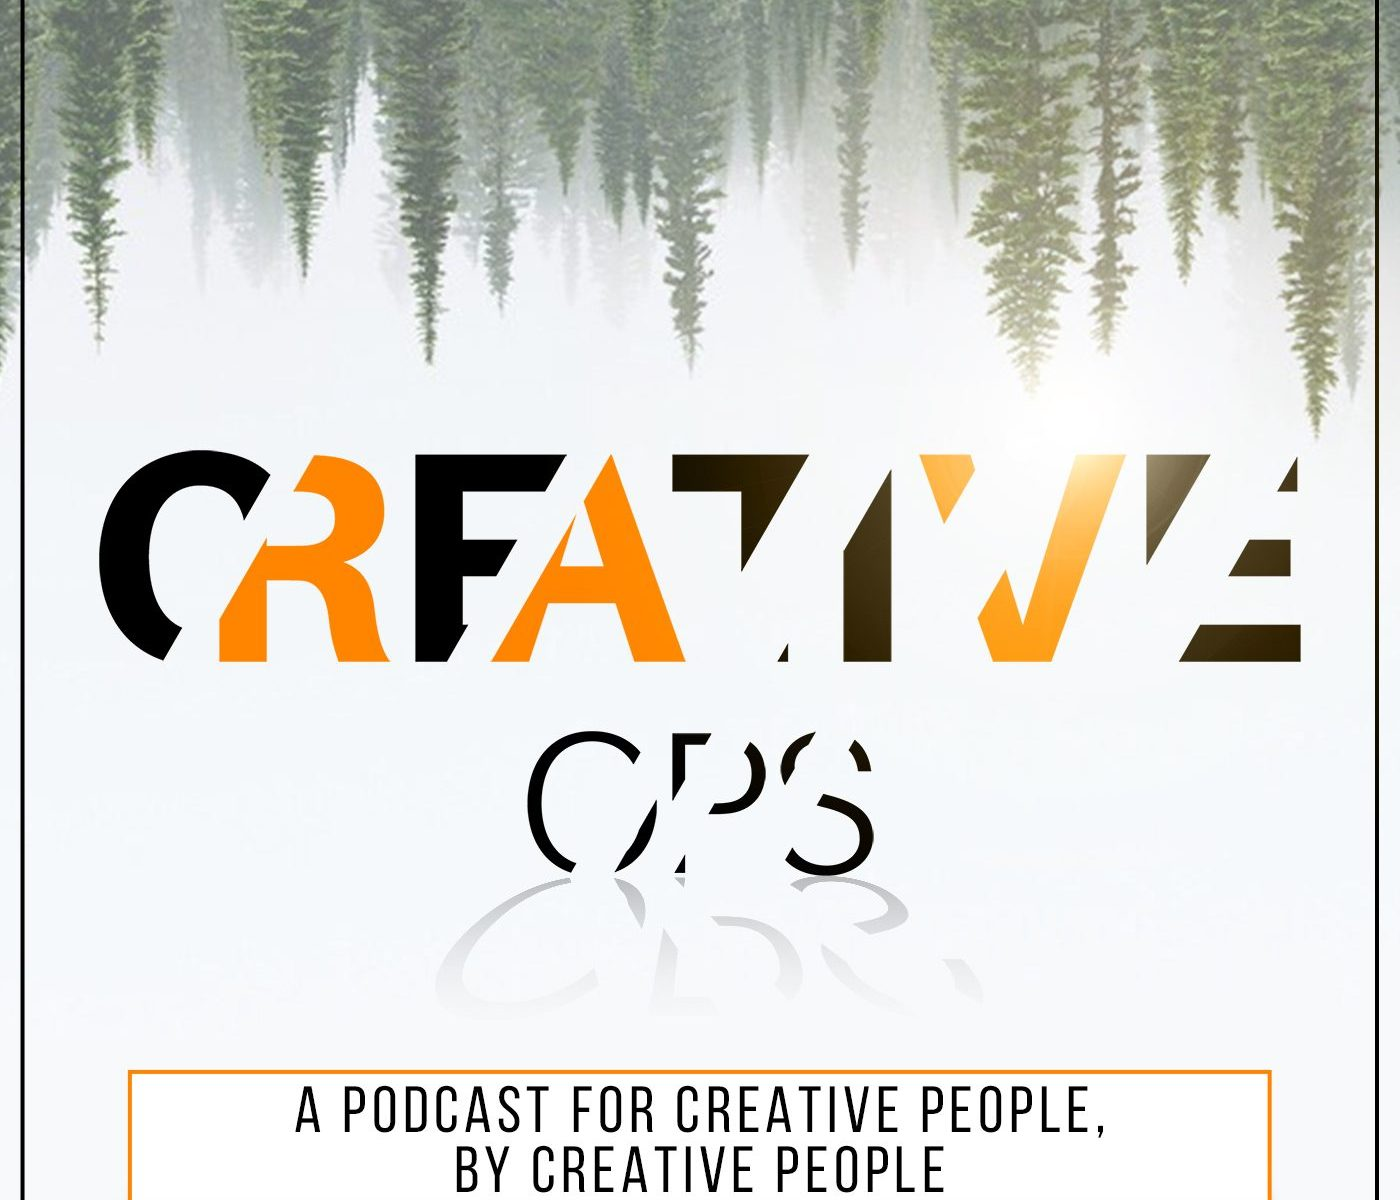 Creative Ops is a podcast for creative people, by creative people. We get to know the creator, their process, and talk about the stuff they make. Artists, musicians, professionals, parents, medical pros, etc...